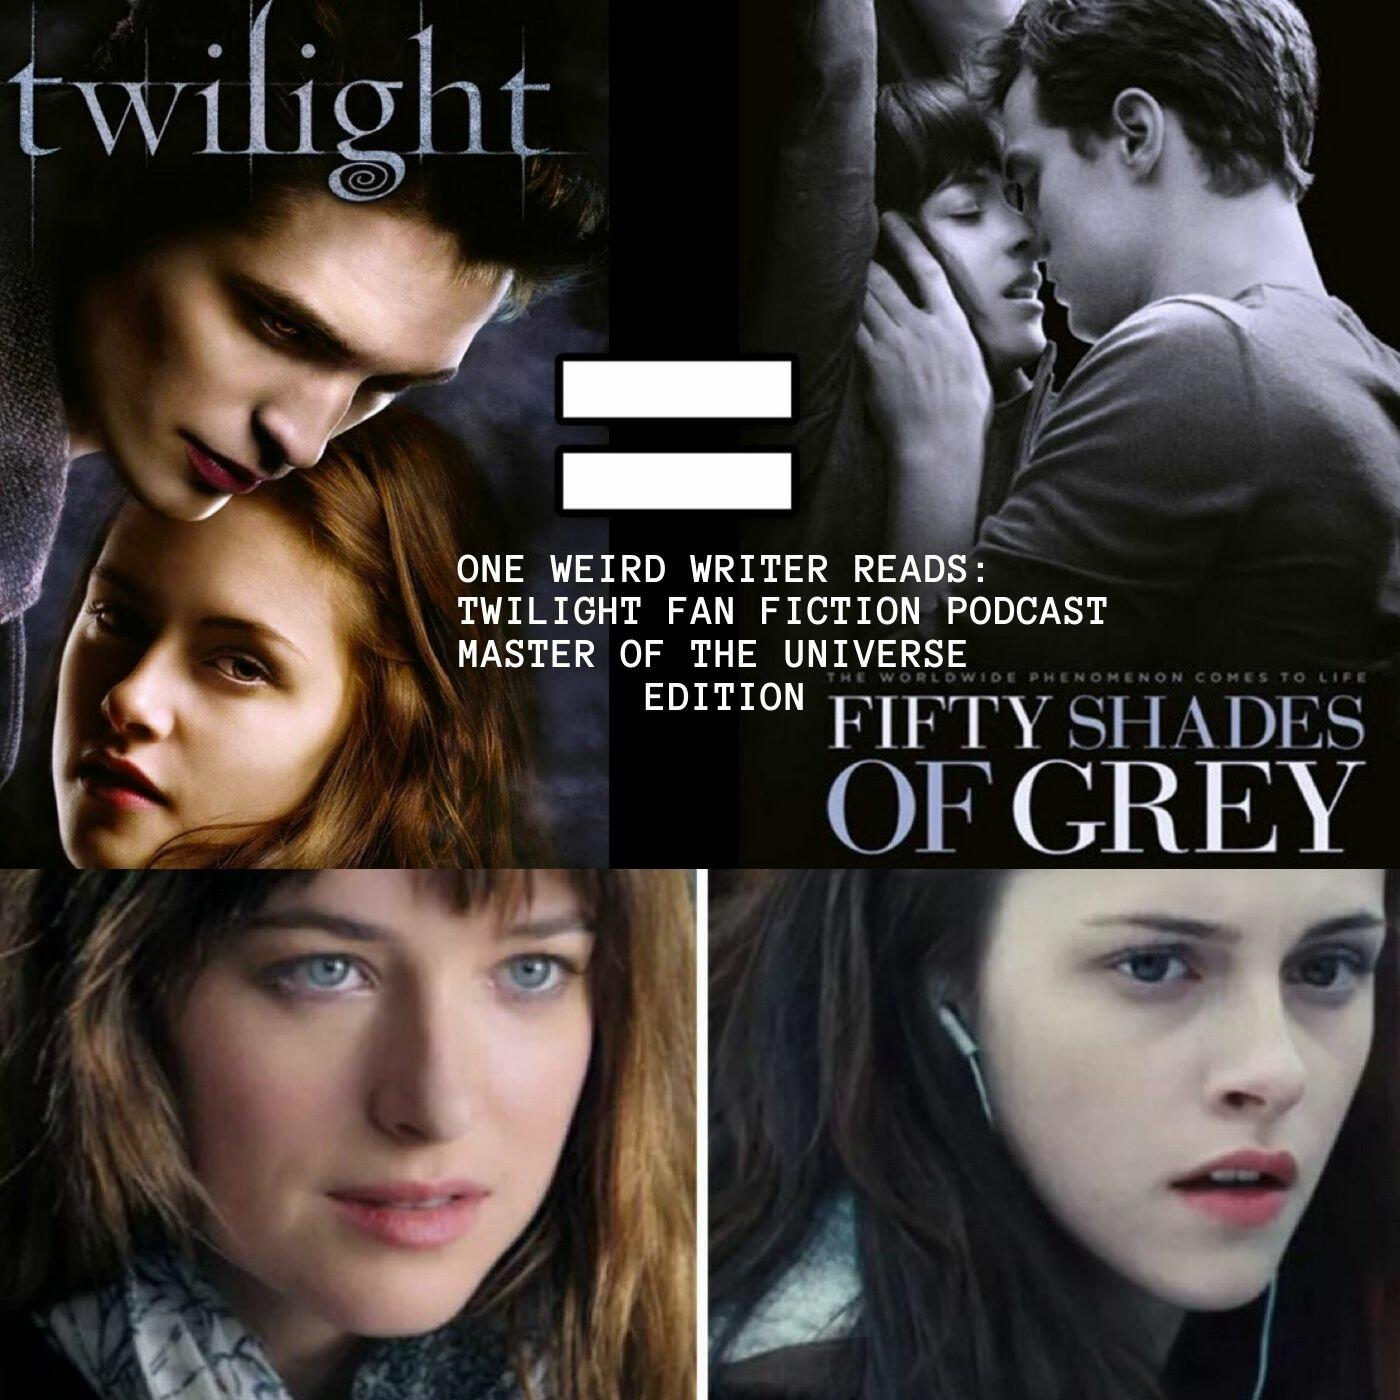 twilight fanfic online dating)